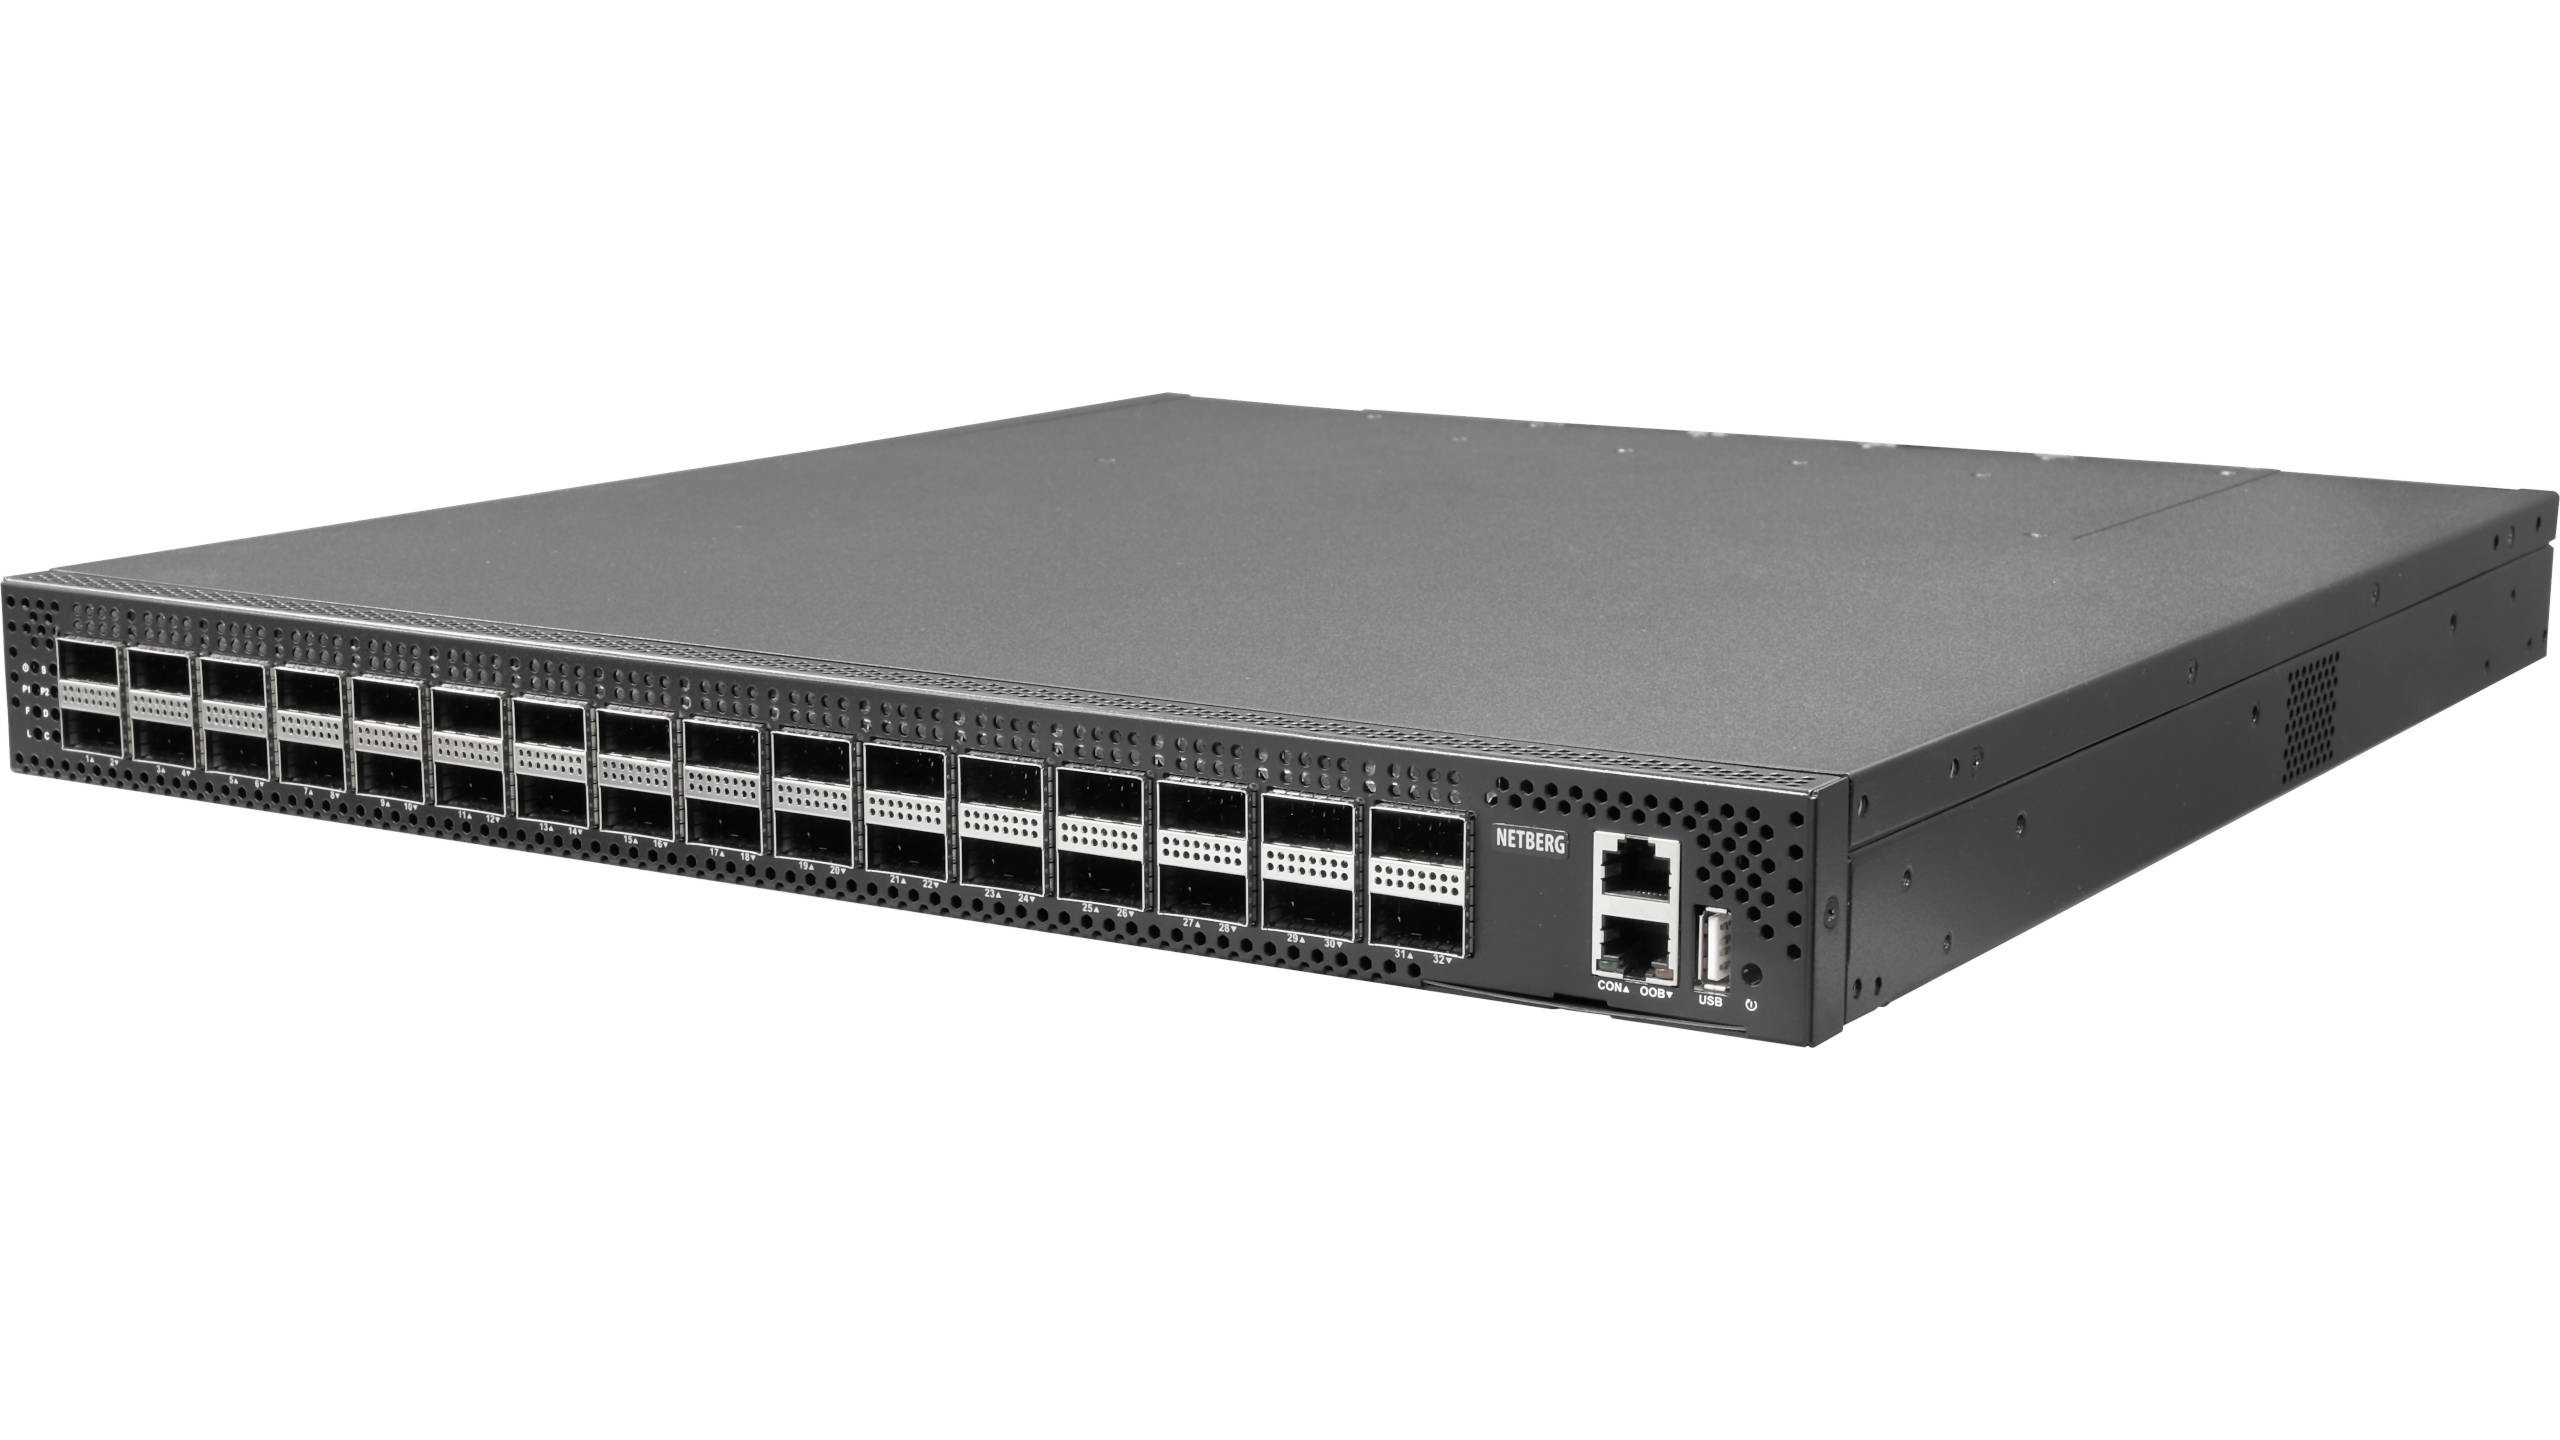 Netberg Aurora 715 100G BM switch preloaded with ONIE front angled view